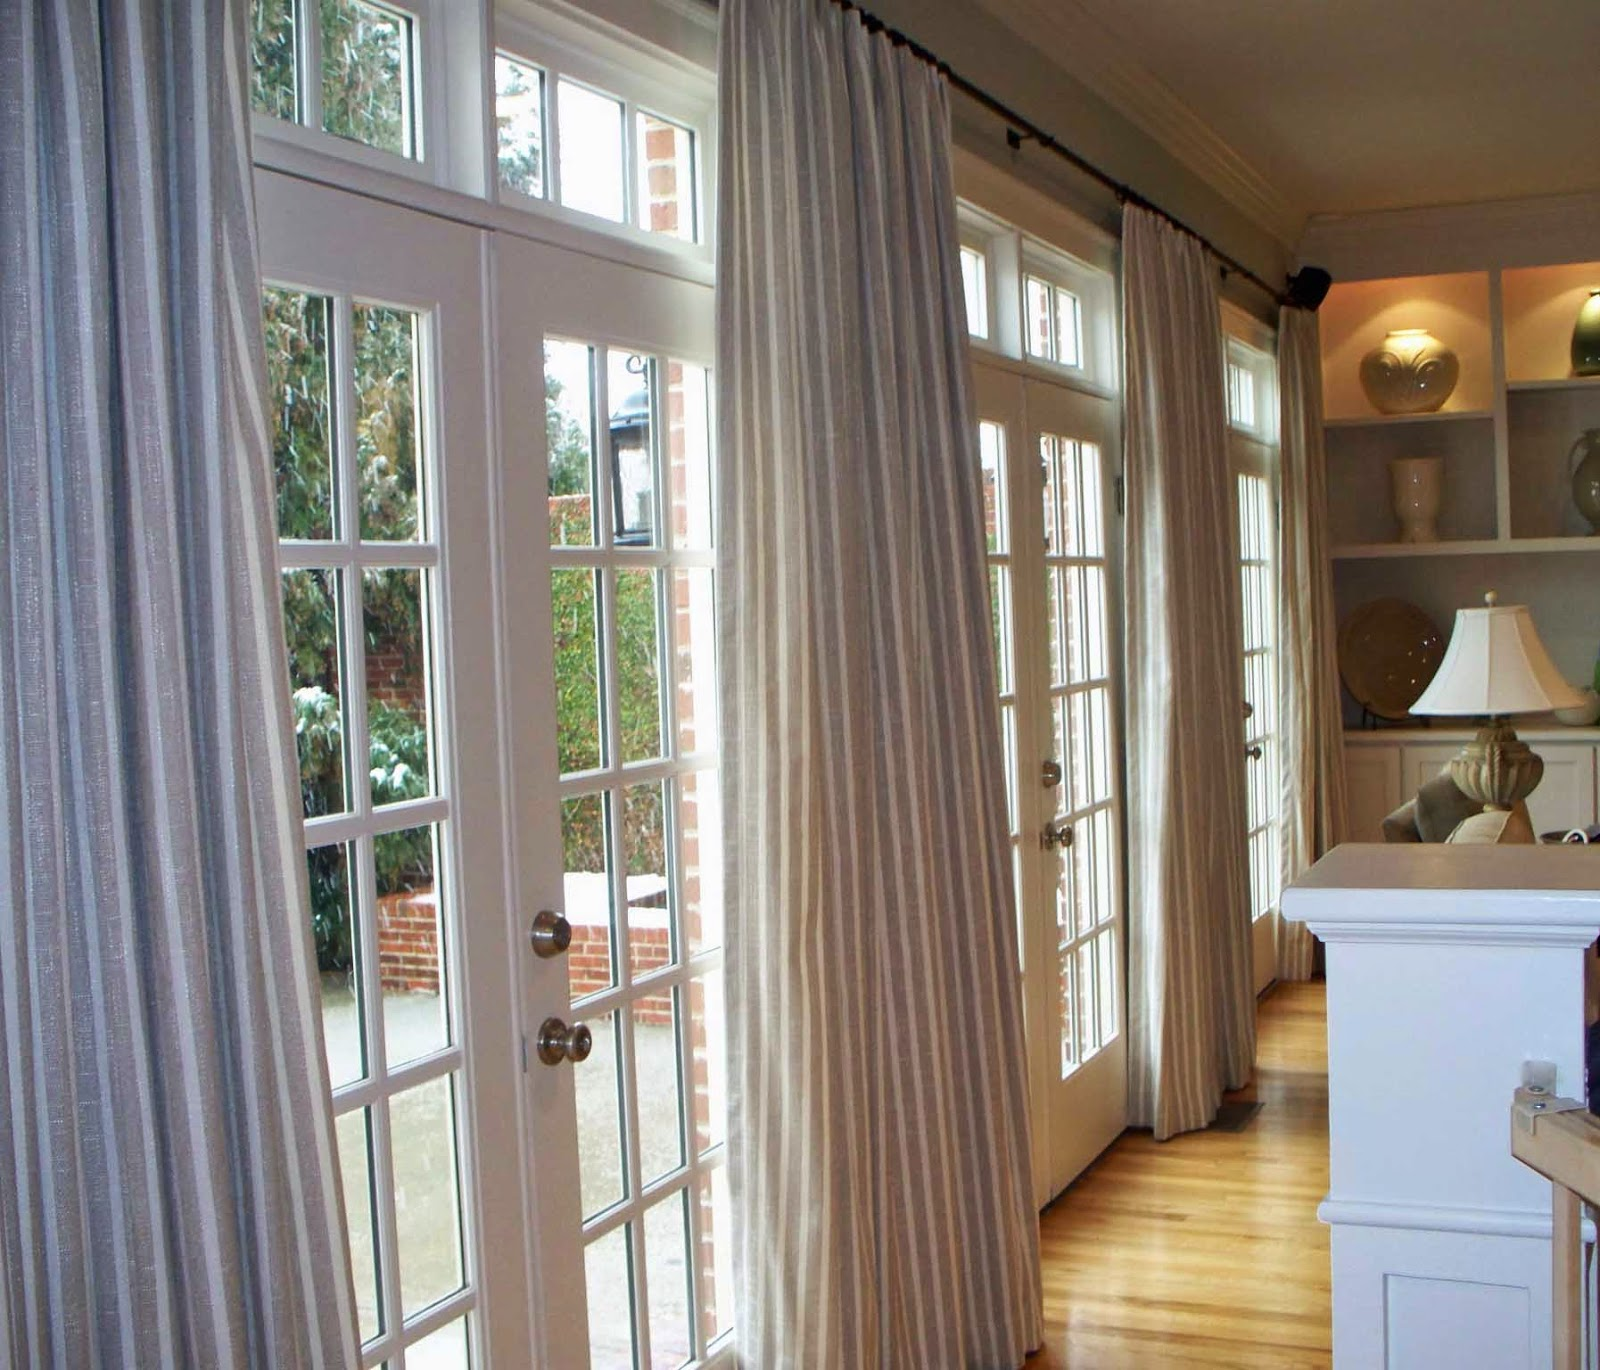 Five Types Of Window Coverings You Can Consider For Summer And Winter,Living Room Seashell Benjamin Moore